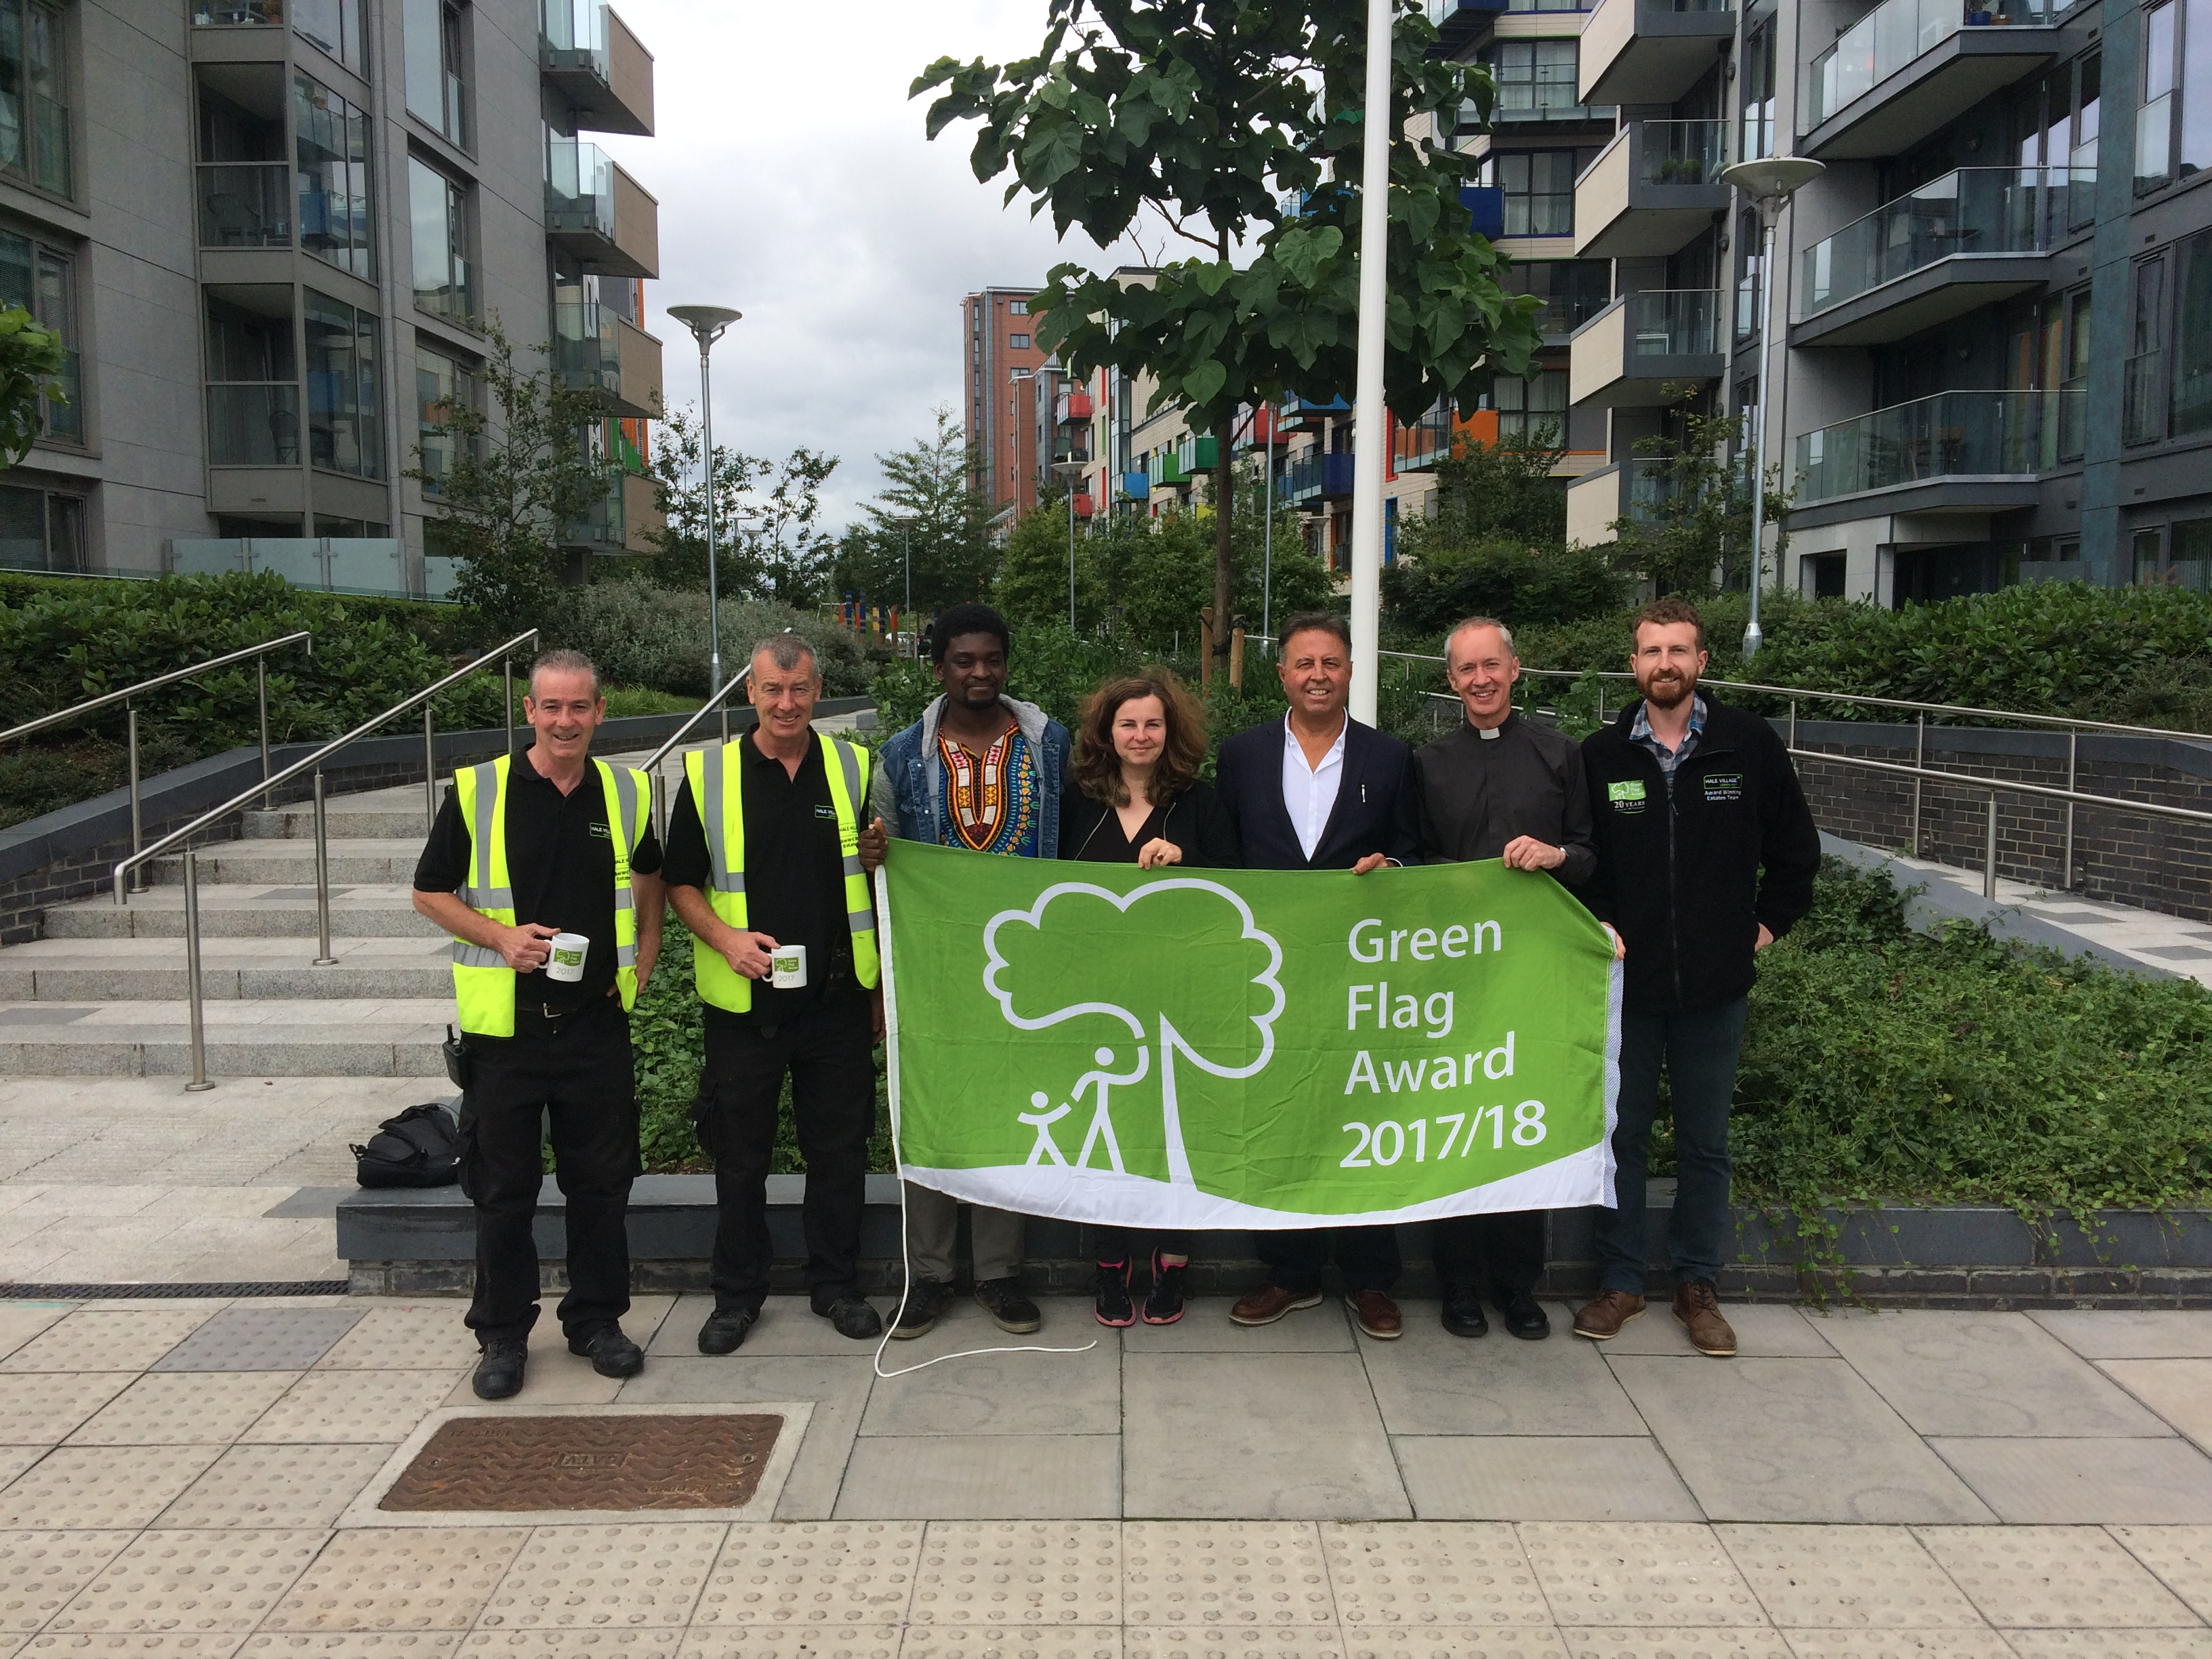 Green flag awarded for second year